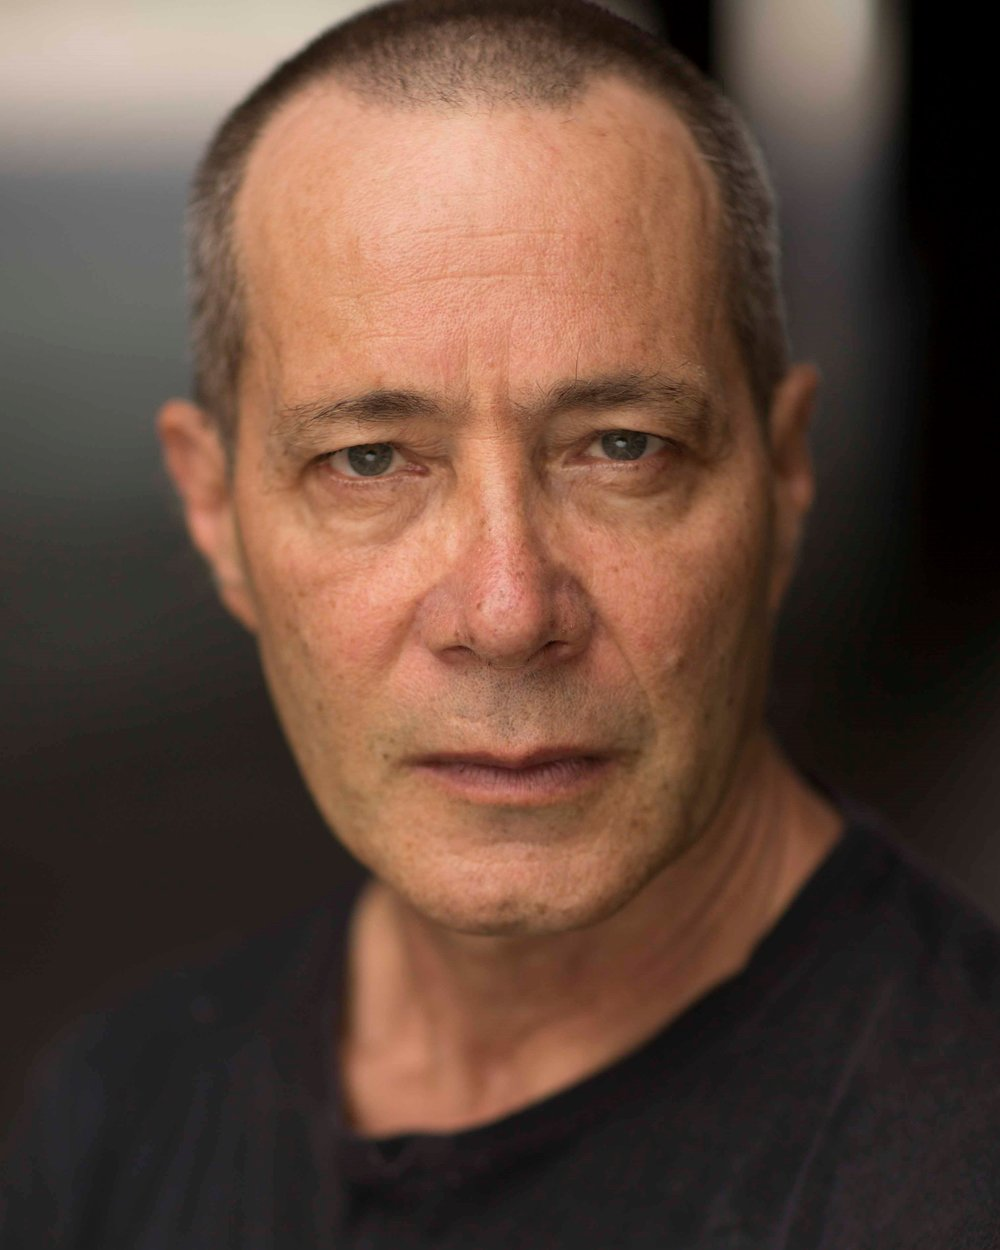 Eugene Gilfedder is back to play two kings; Creon and Aegeus. One banishes Medea from Corinth, the other promises her sanctuary. How will this end?